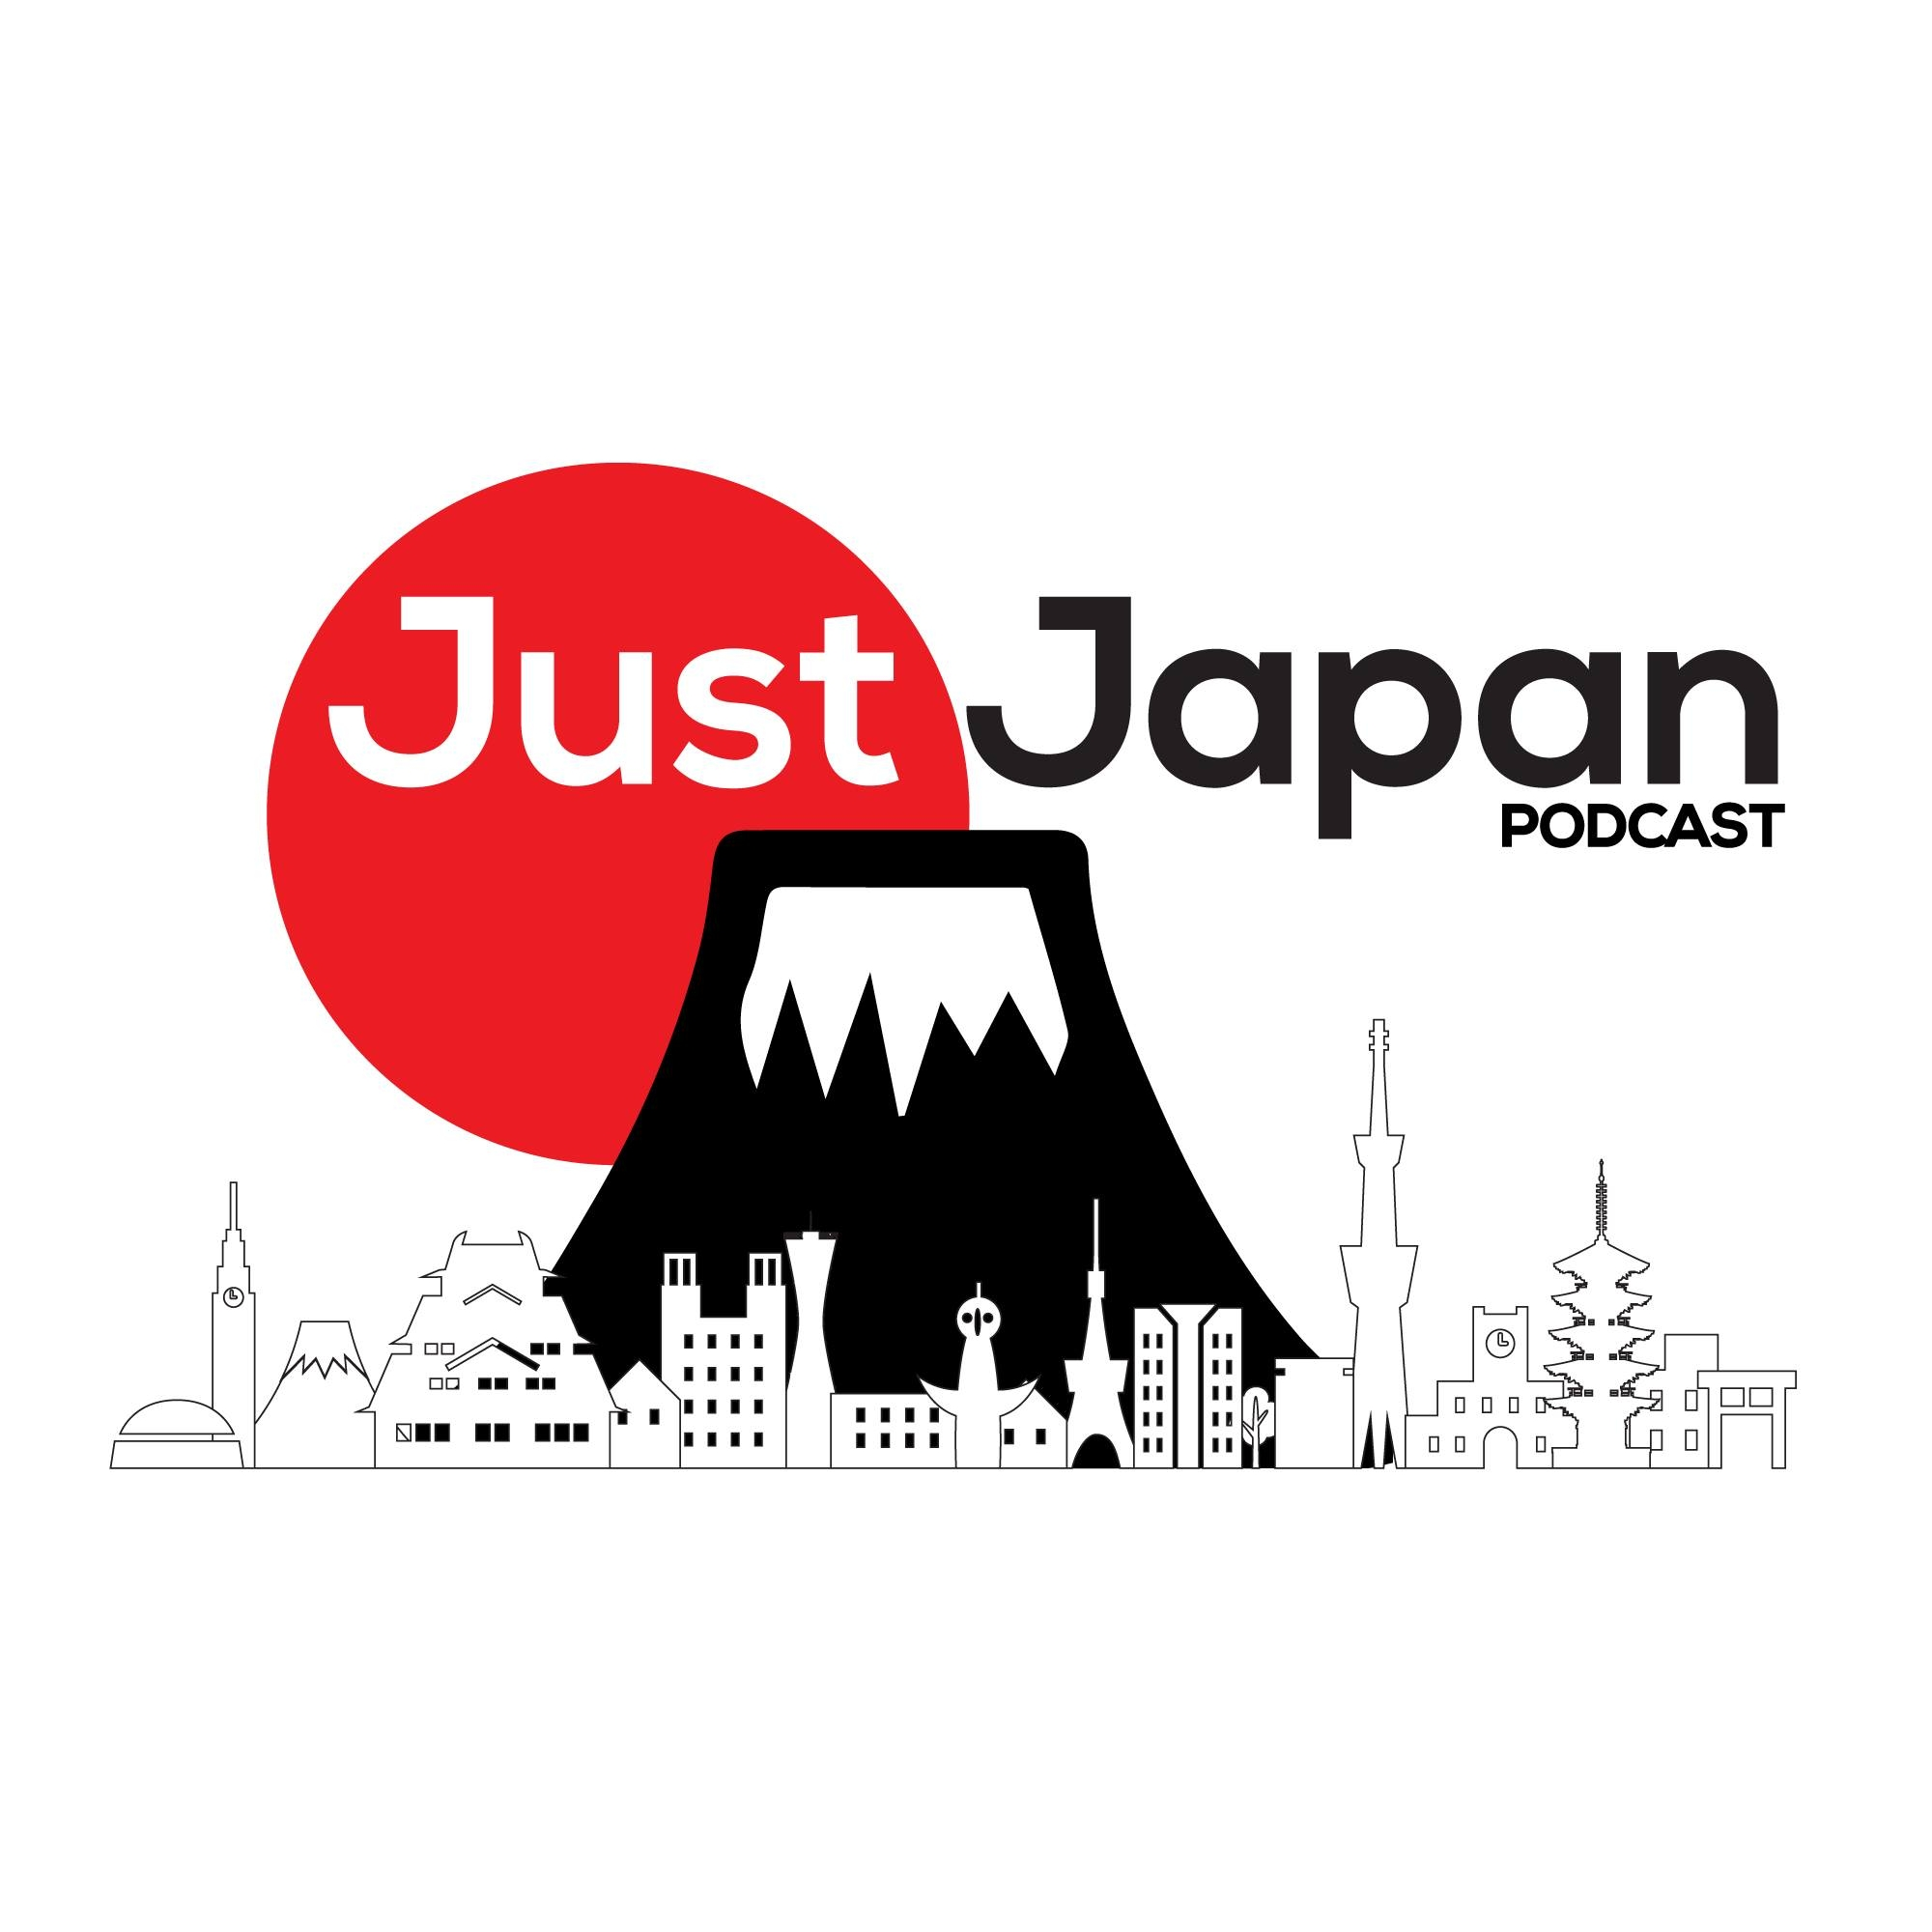 Just Japan Podcast 198: How to Snag a University Job  show art